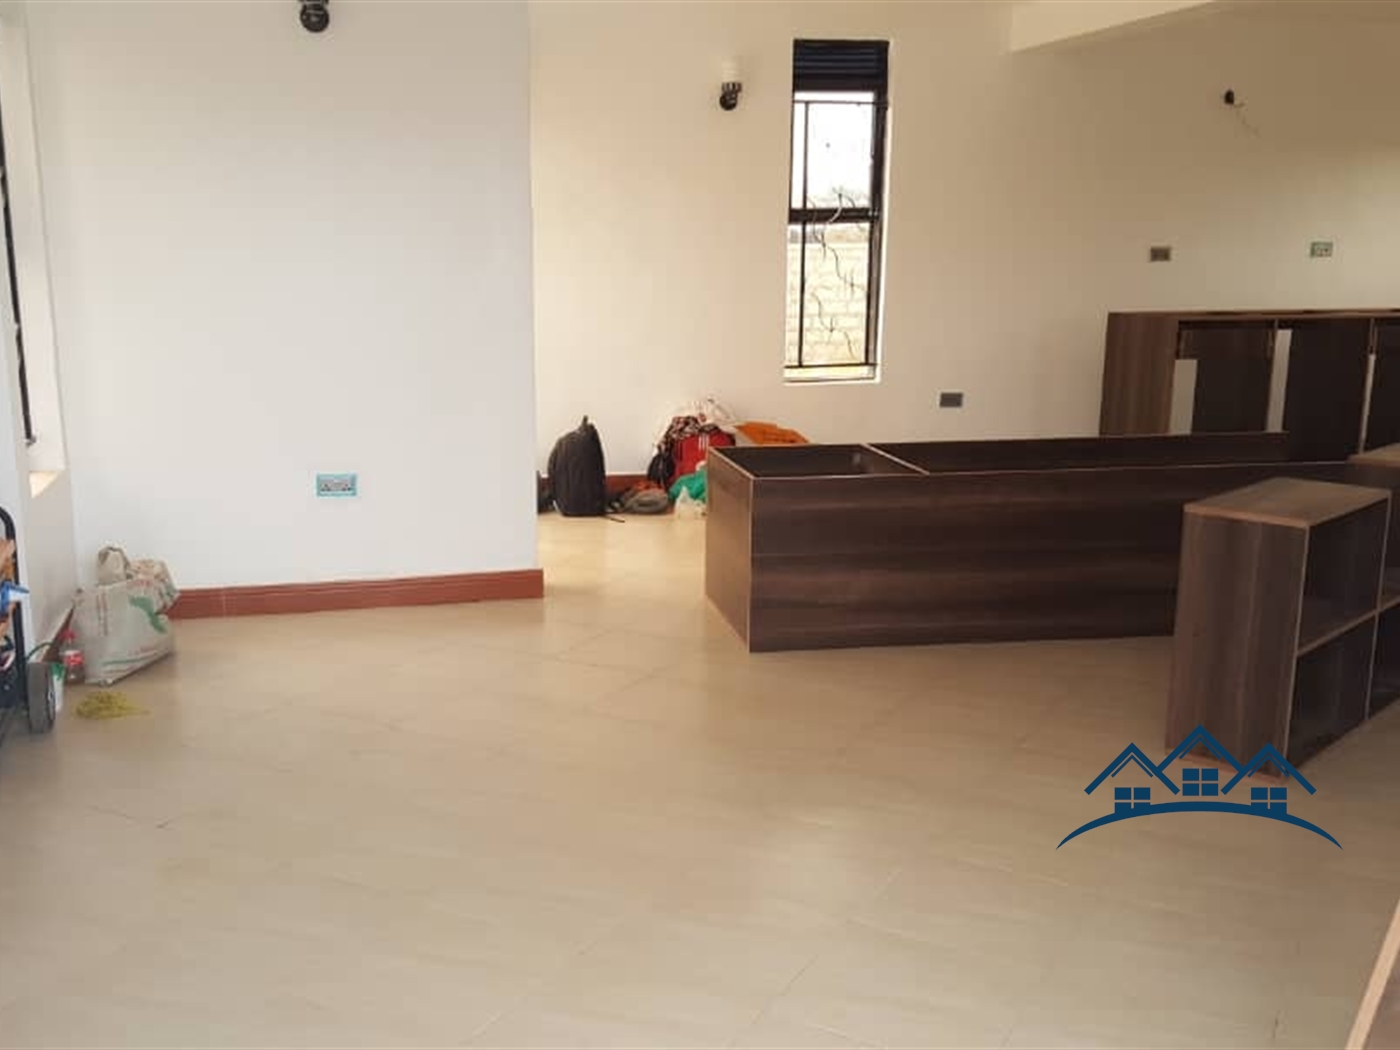 Storeyed house for sale in Kitende Kampala